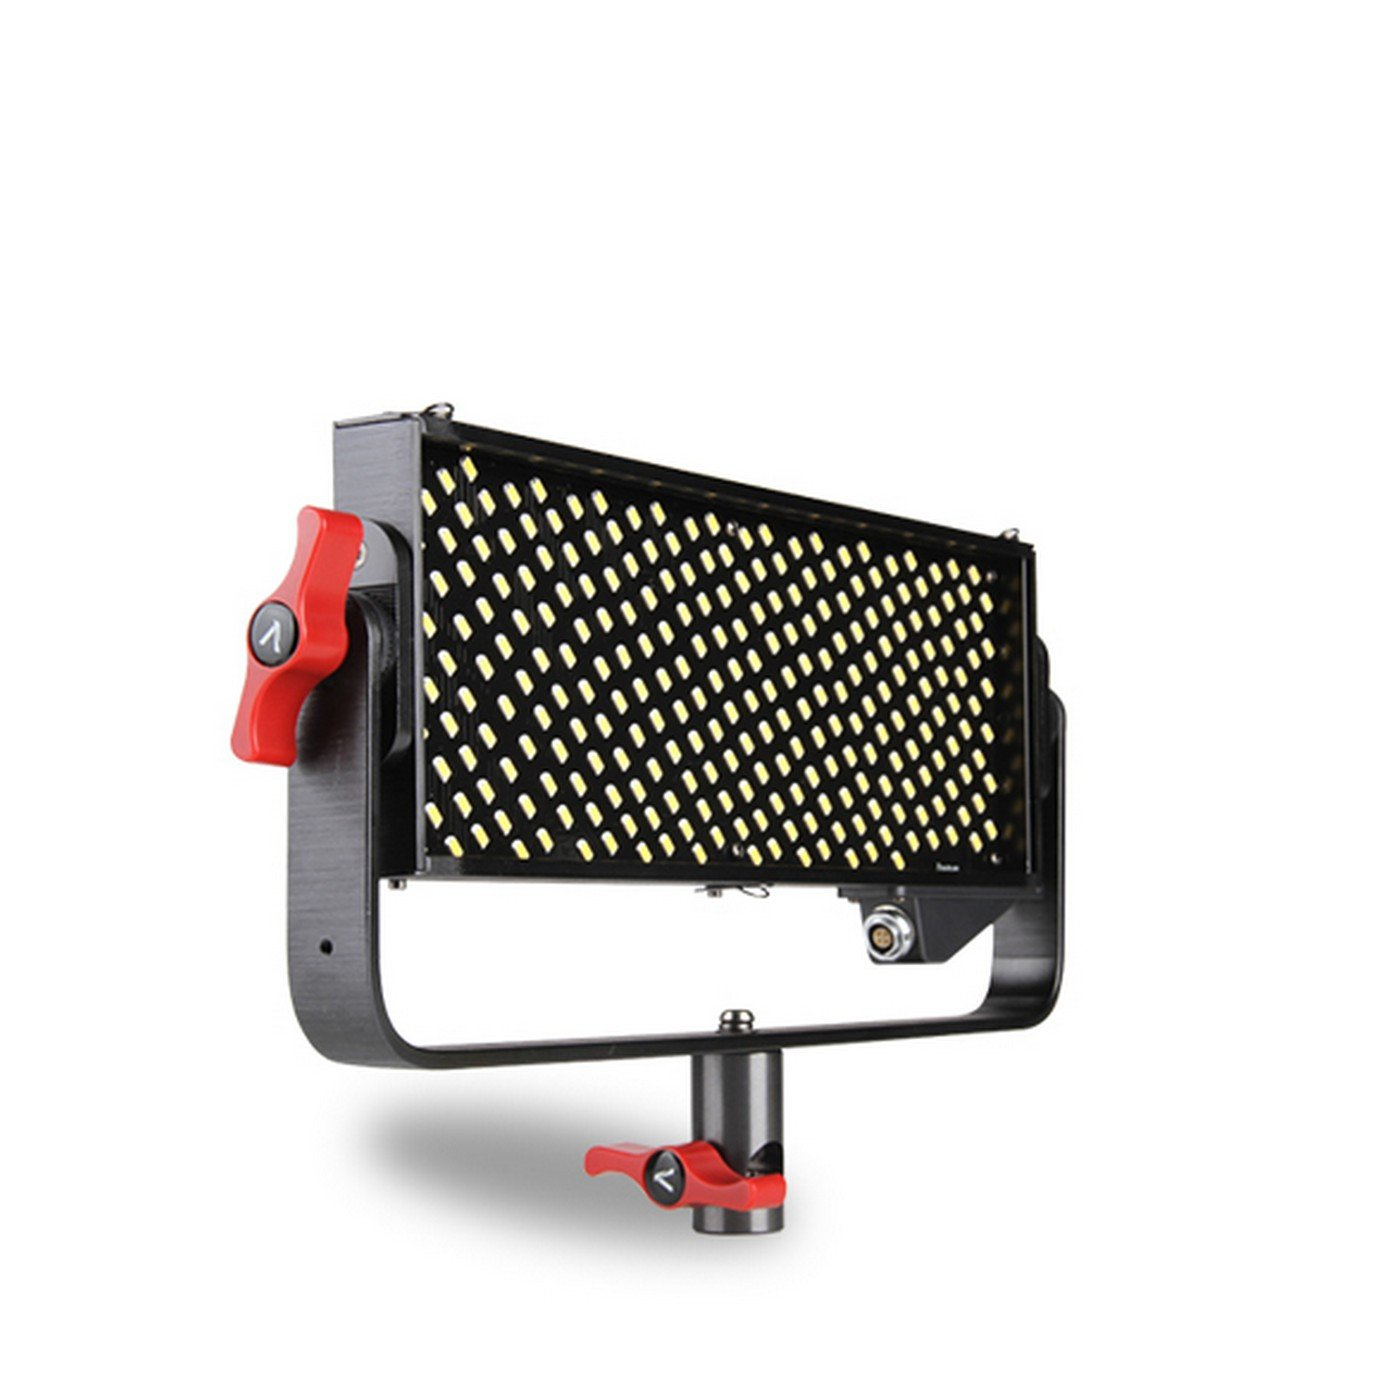 Aputure LS1/2w LightStorm | Aputure LS1/2w Lightstorm Daylight Temp for AB Mount Color Temperature Of 5500K by Aputure